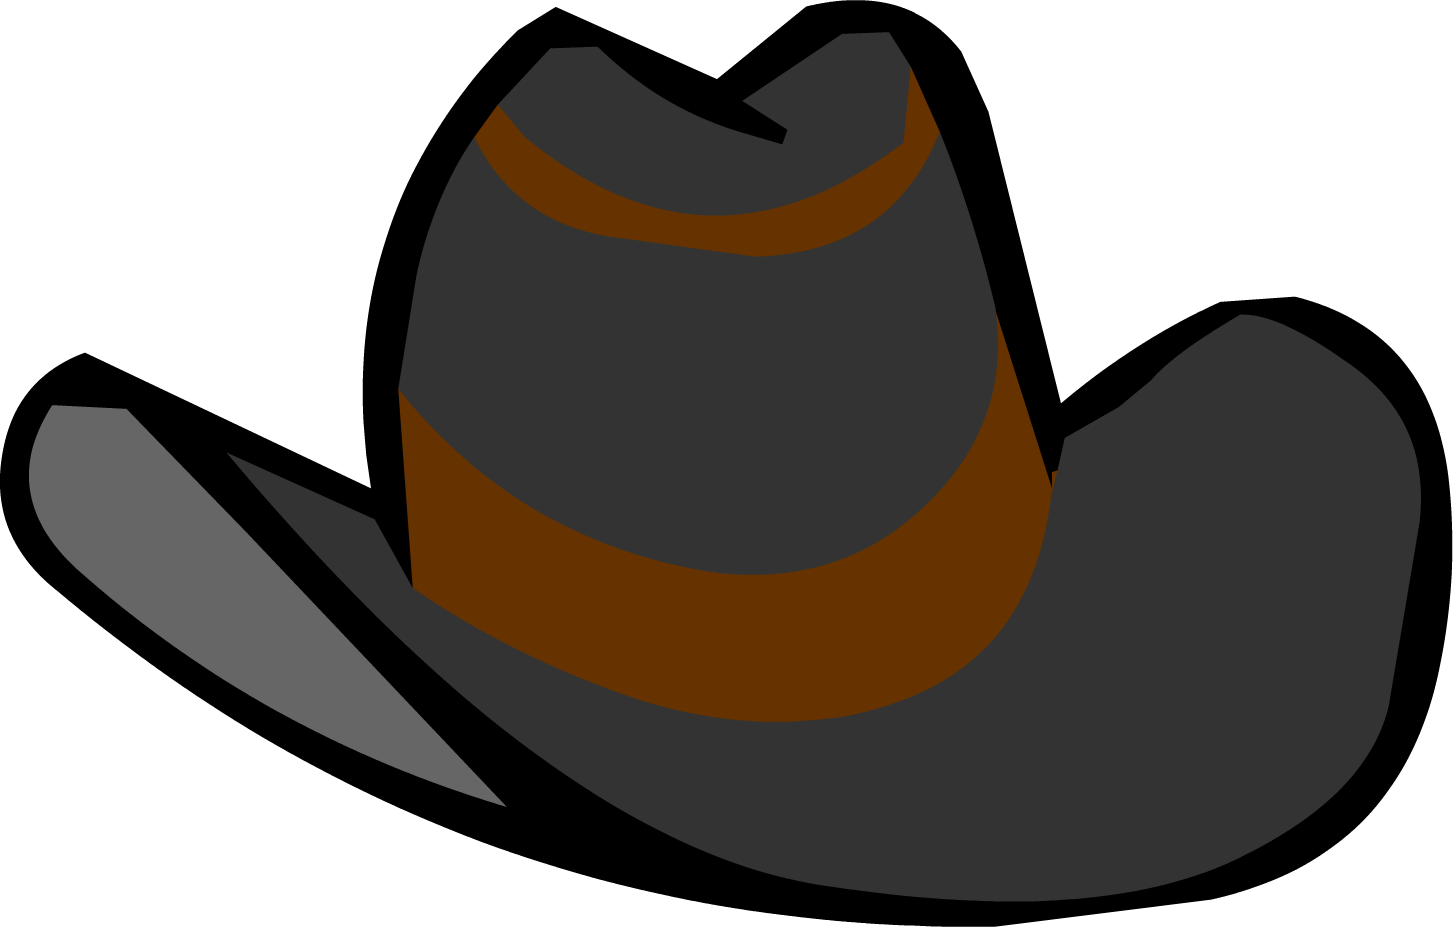 Icons Png Cowboy Download